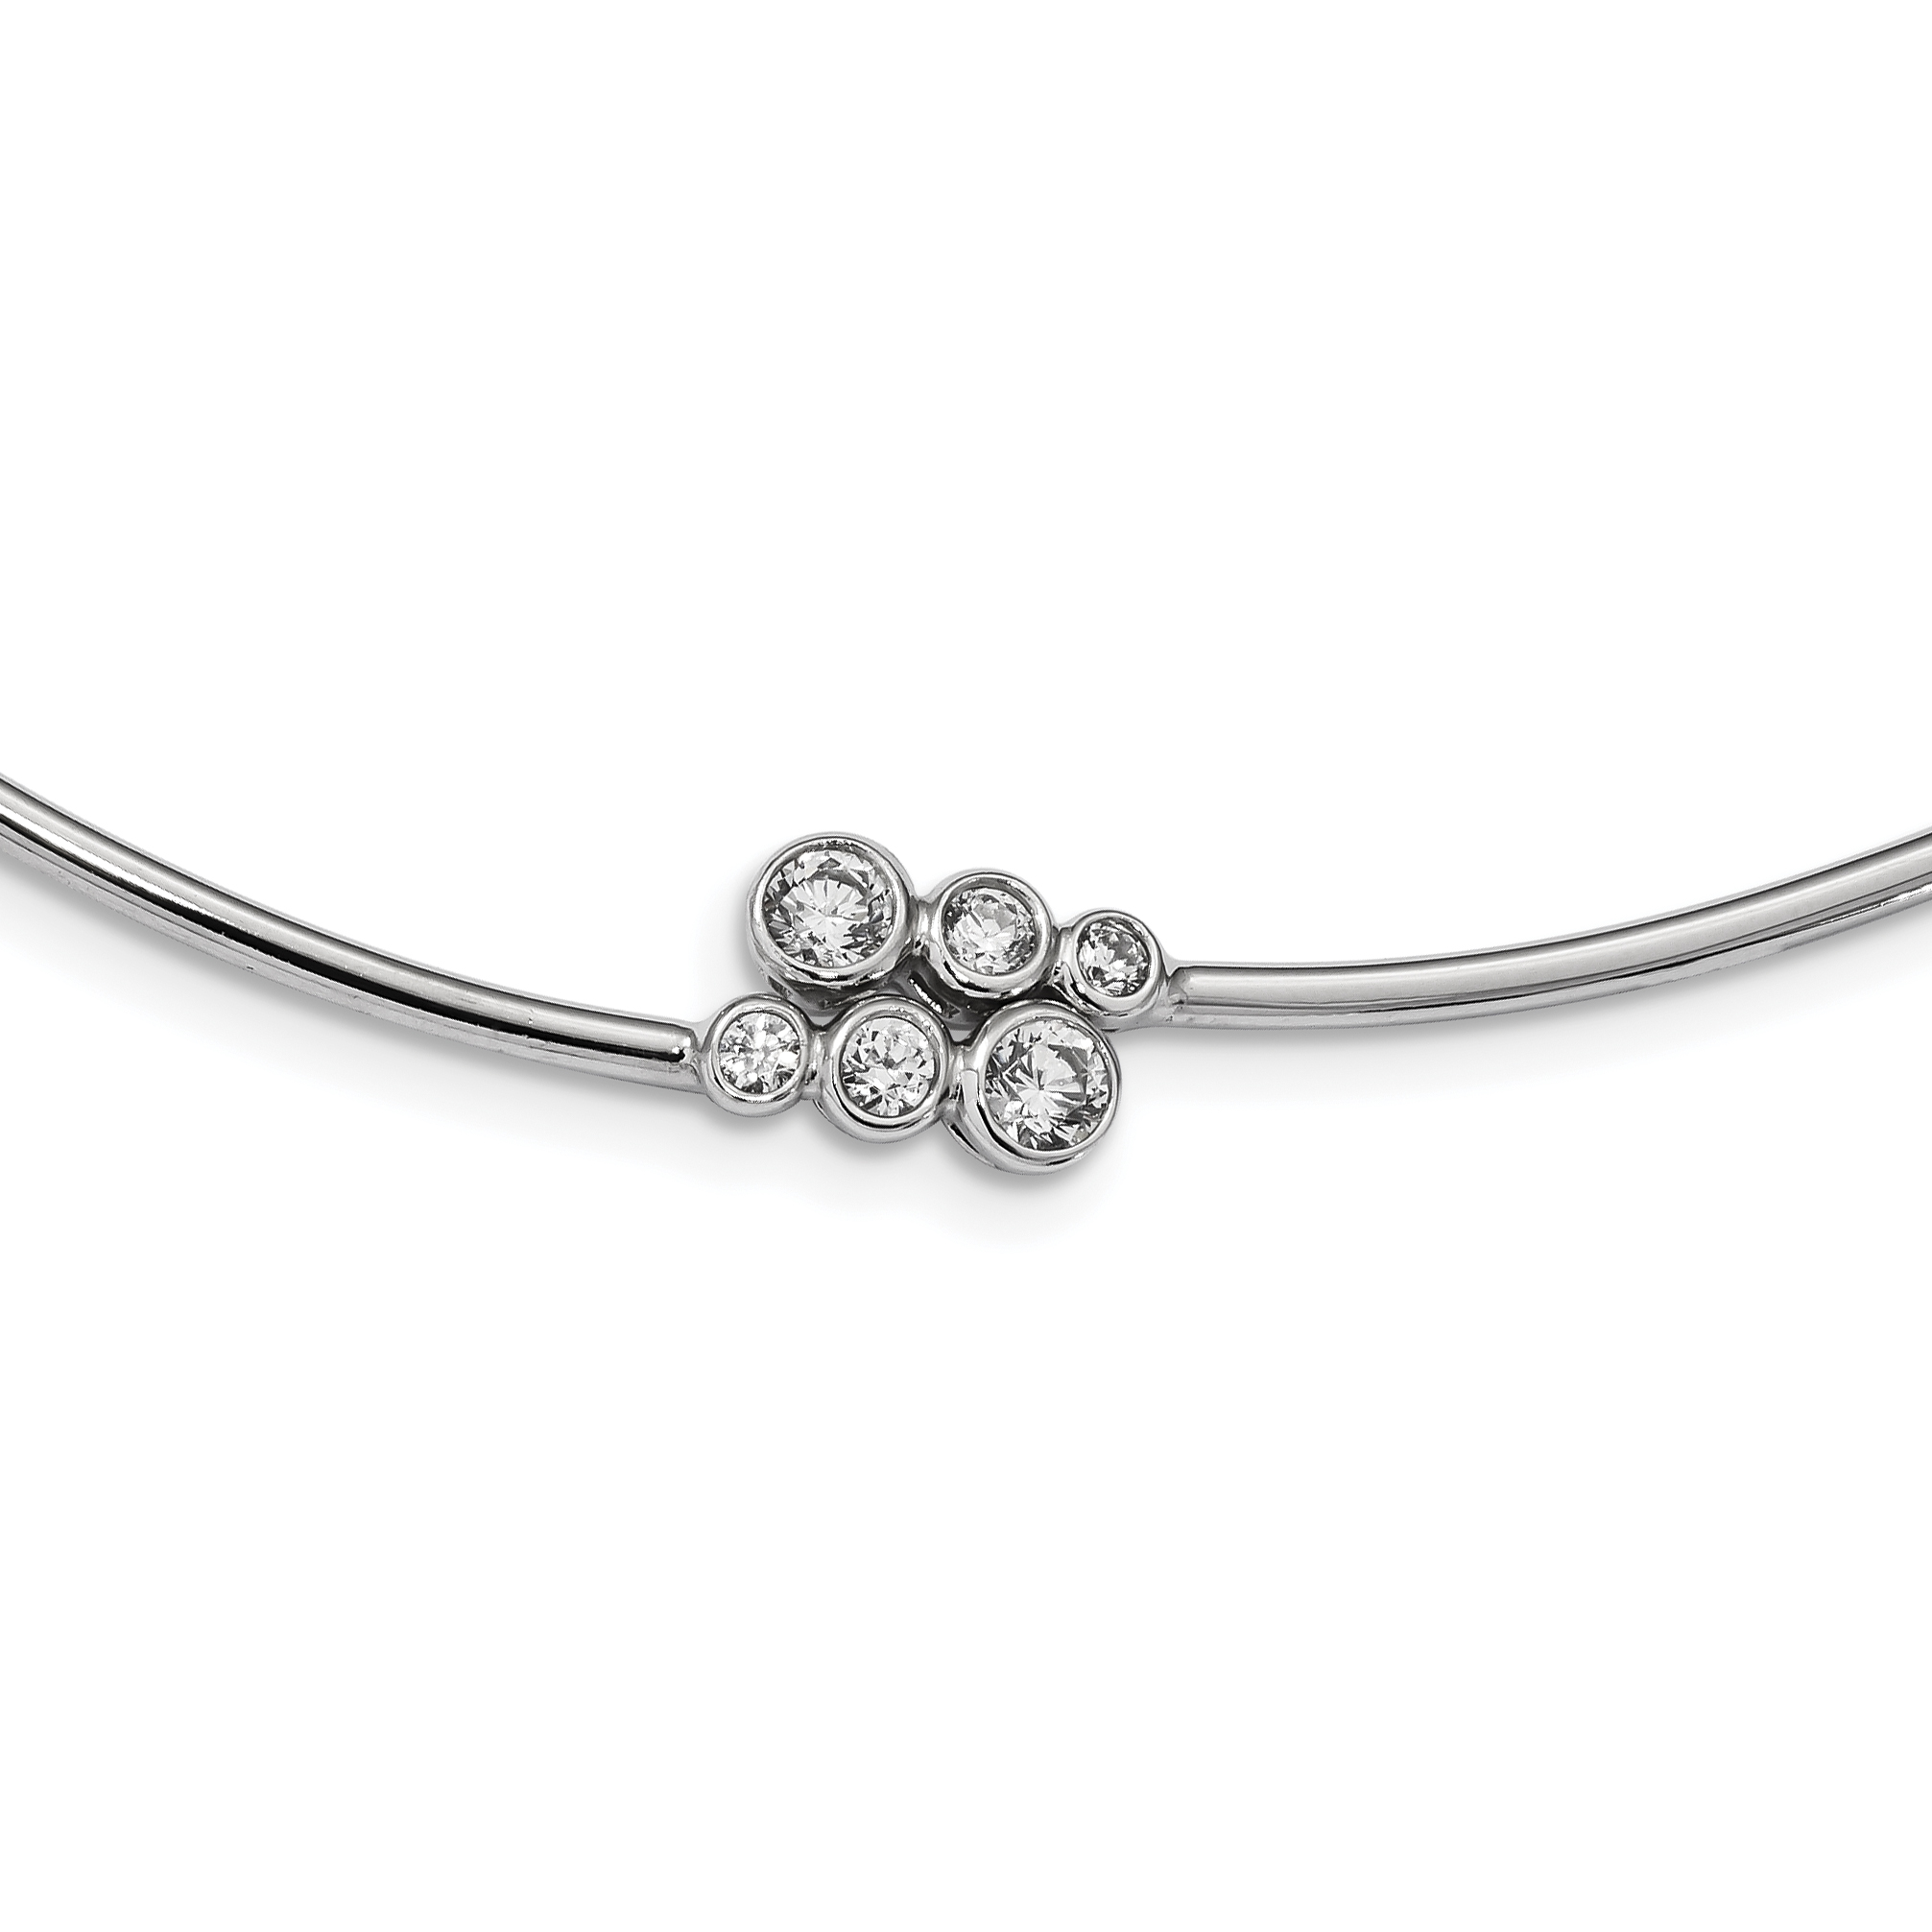 Necklace Jewelry Necklaces Neckwires Leslies Sterling Silver Rhodium-plated Wire with 2in ext